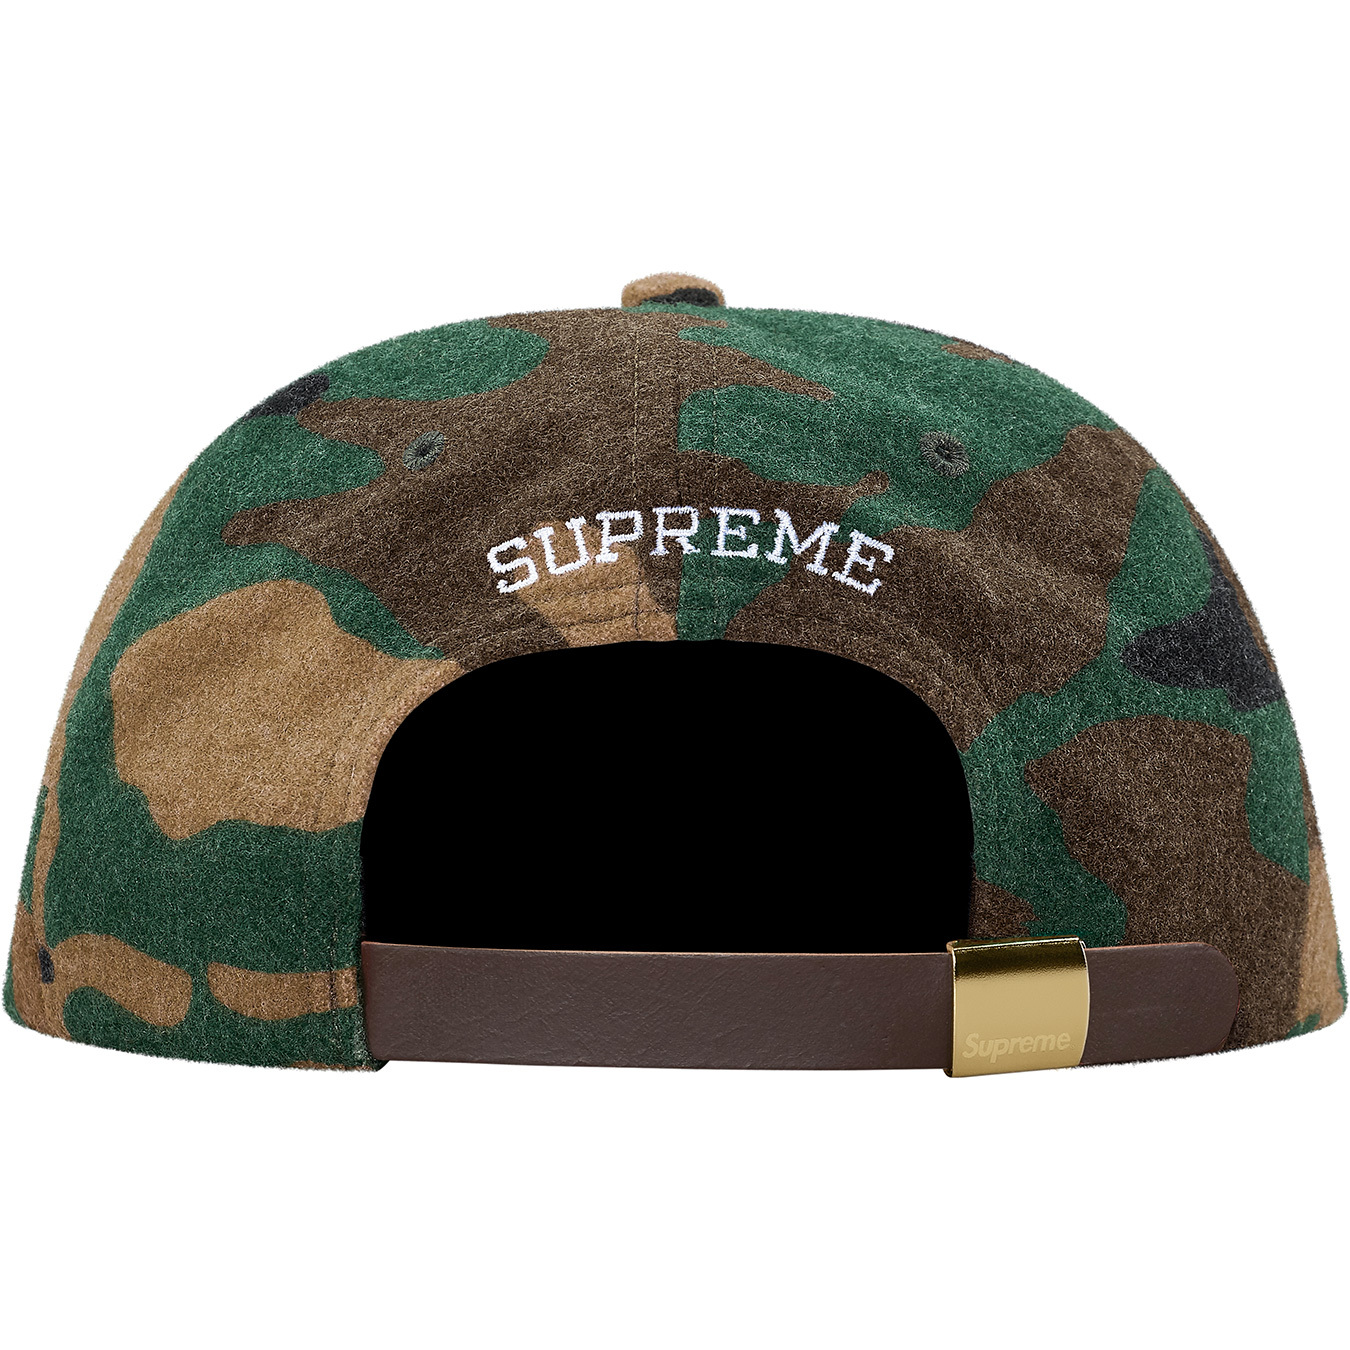 supreme-2017aw-fall-winter-wool-s-logo-6-panel